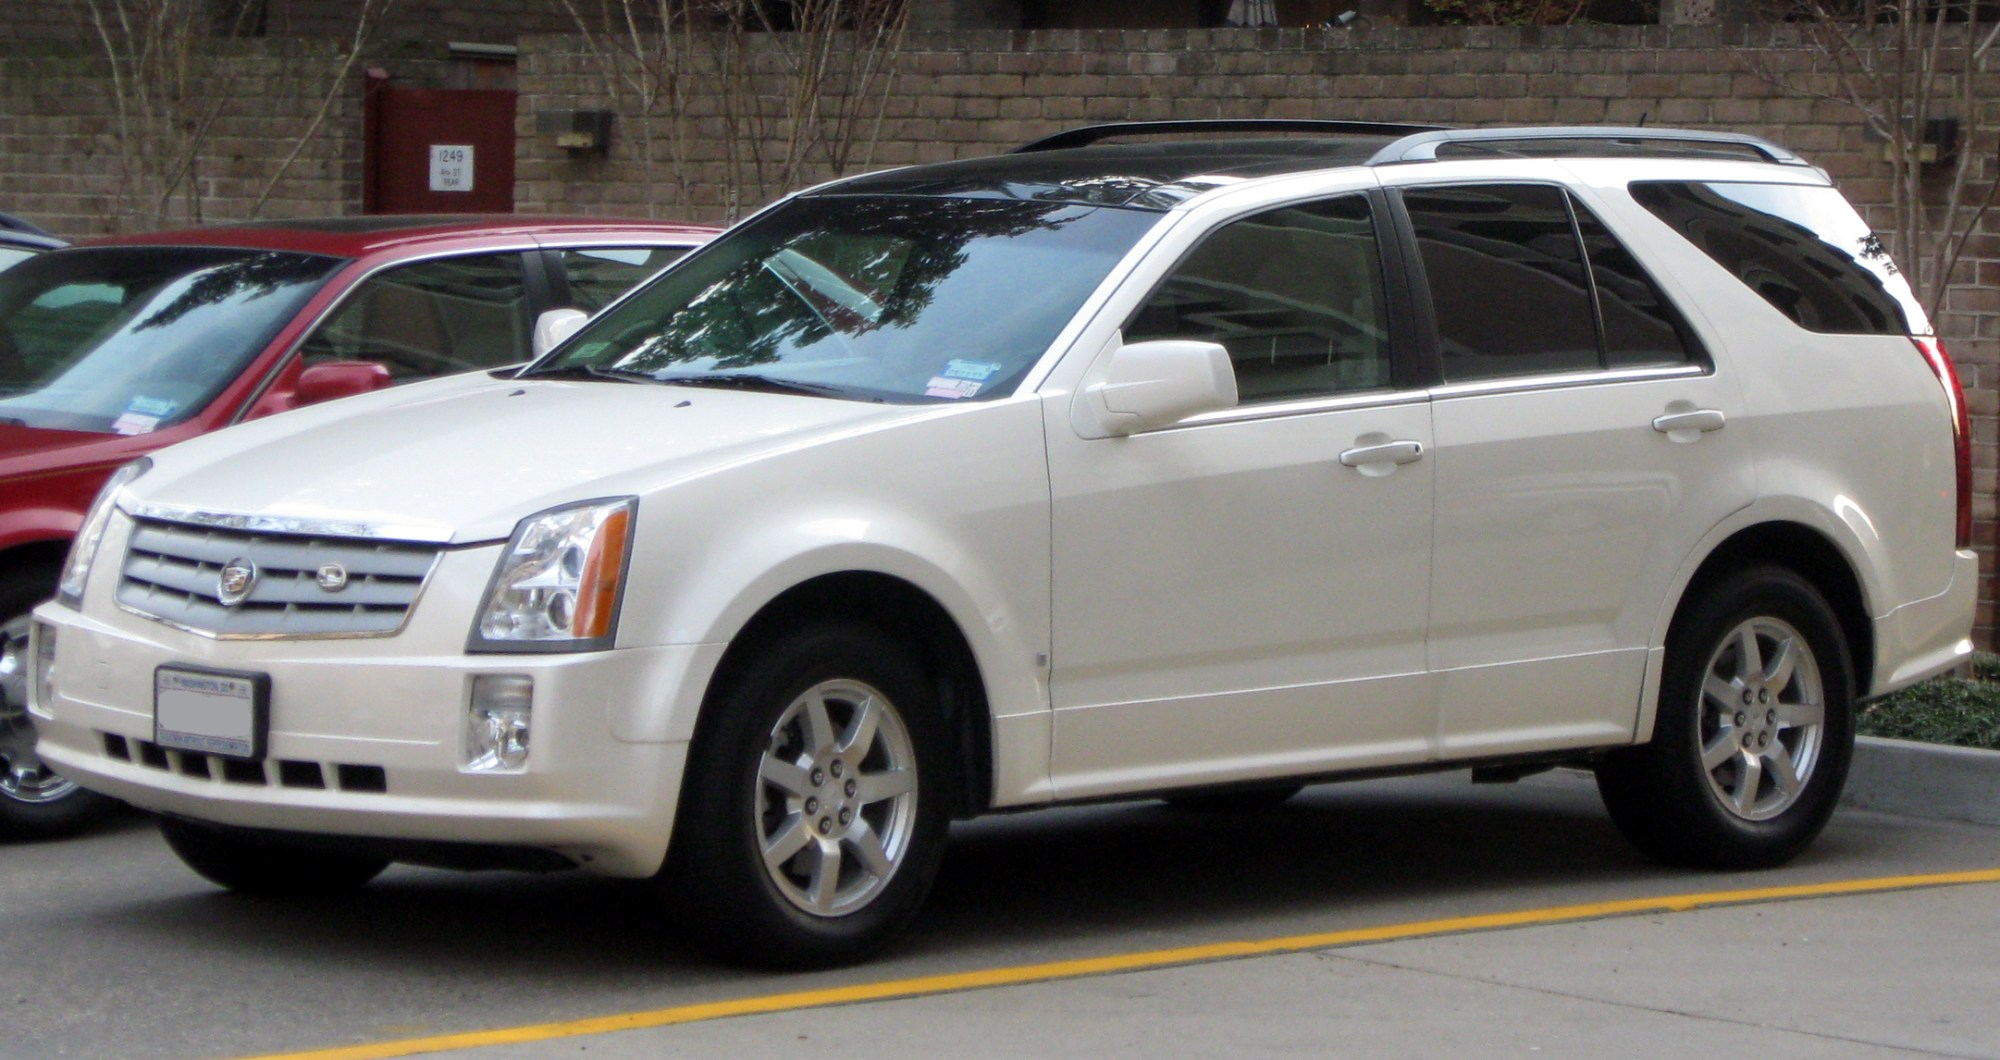 hight resolution of 2007 cadillac srx 17 cadillac srx 17